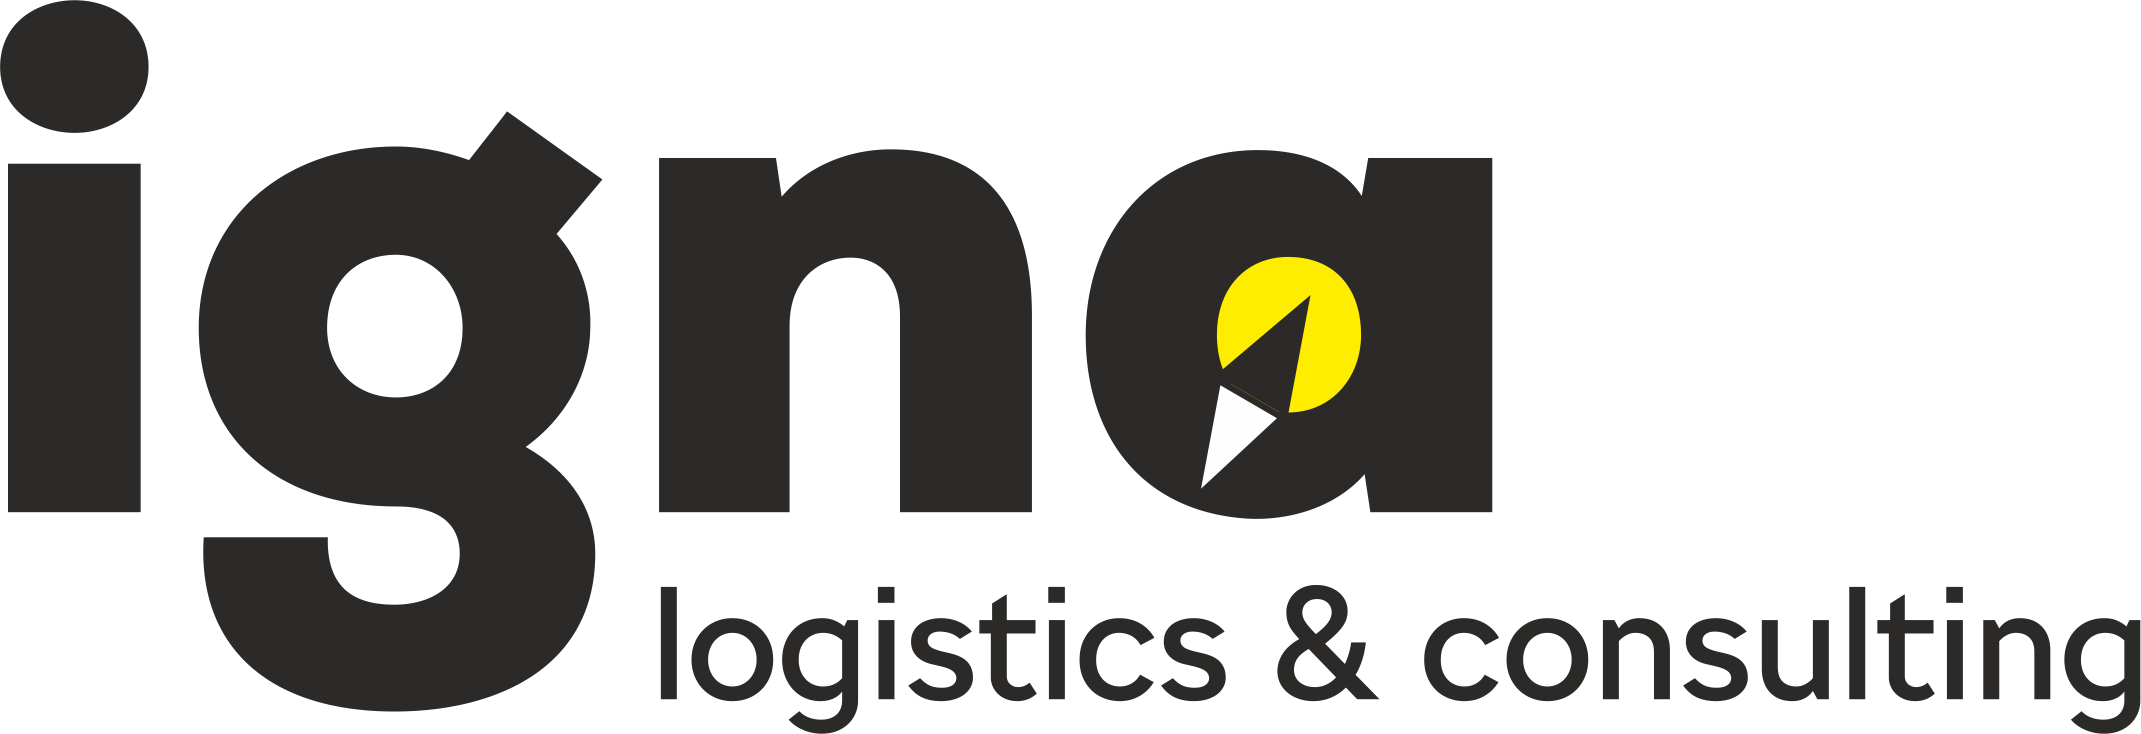 Igna logistics & consulting